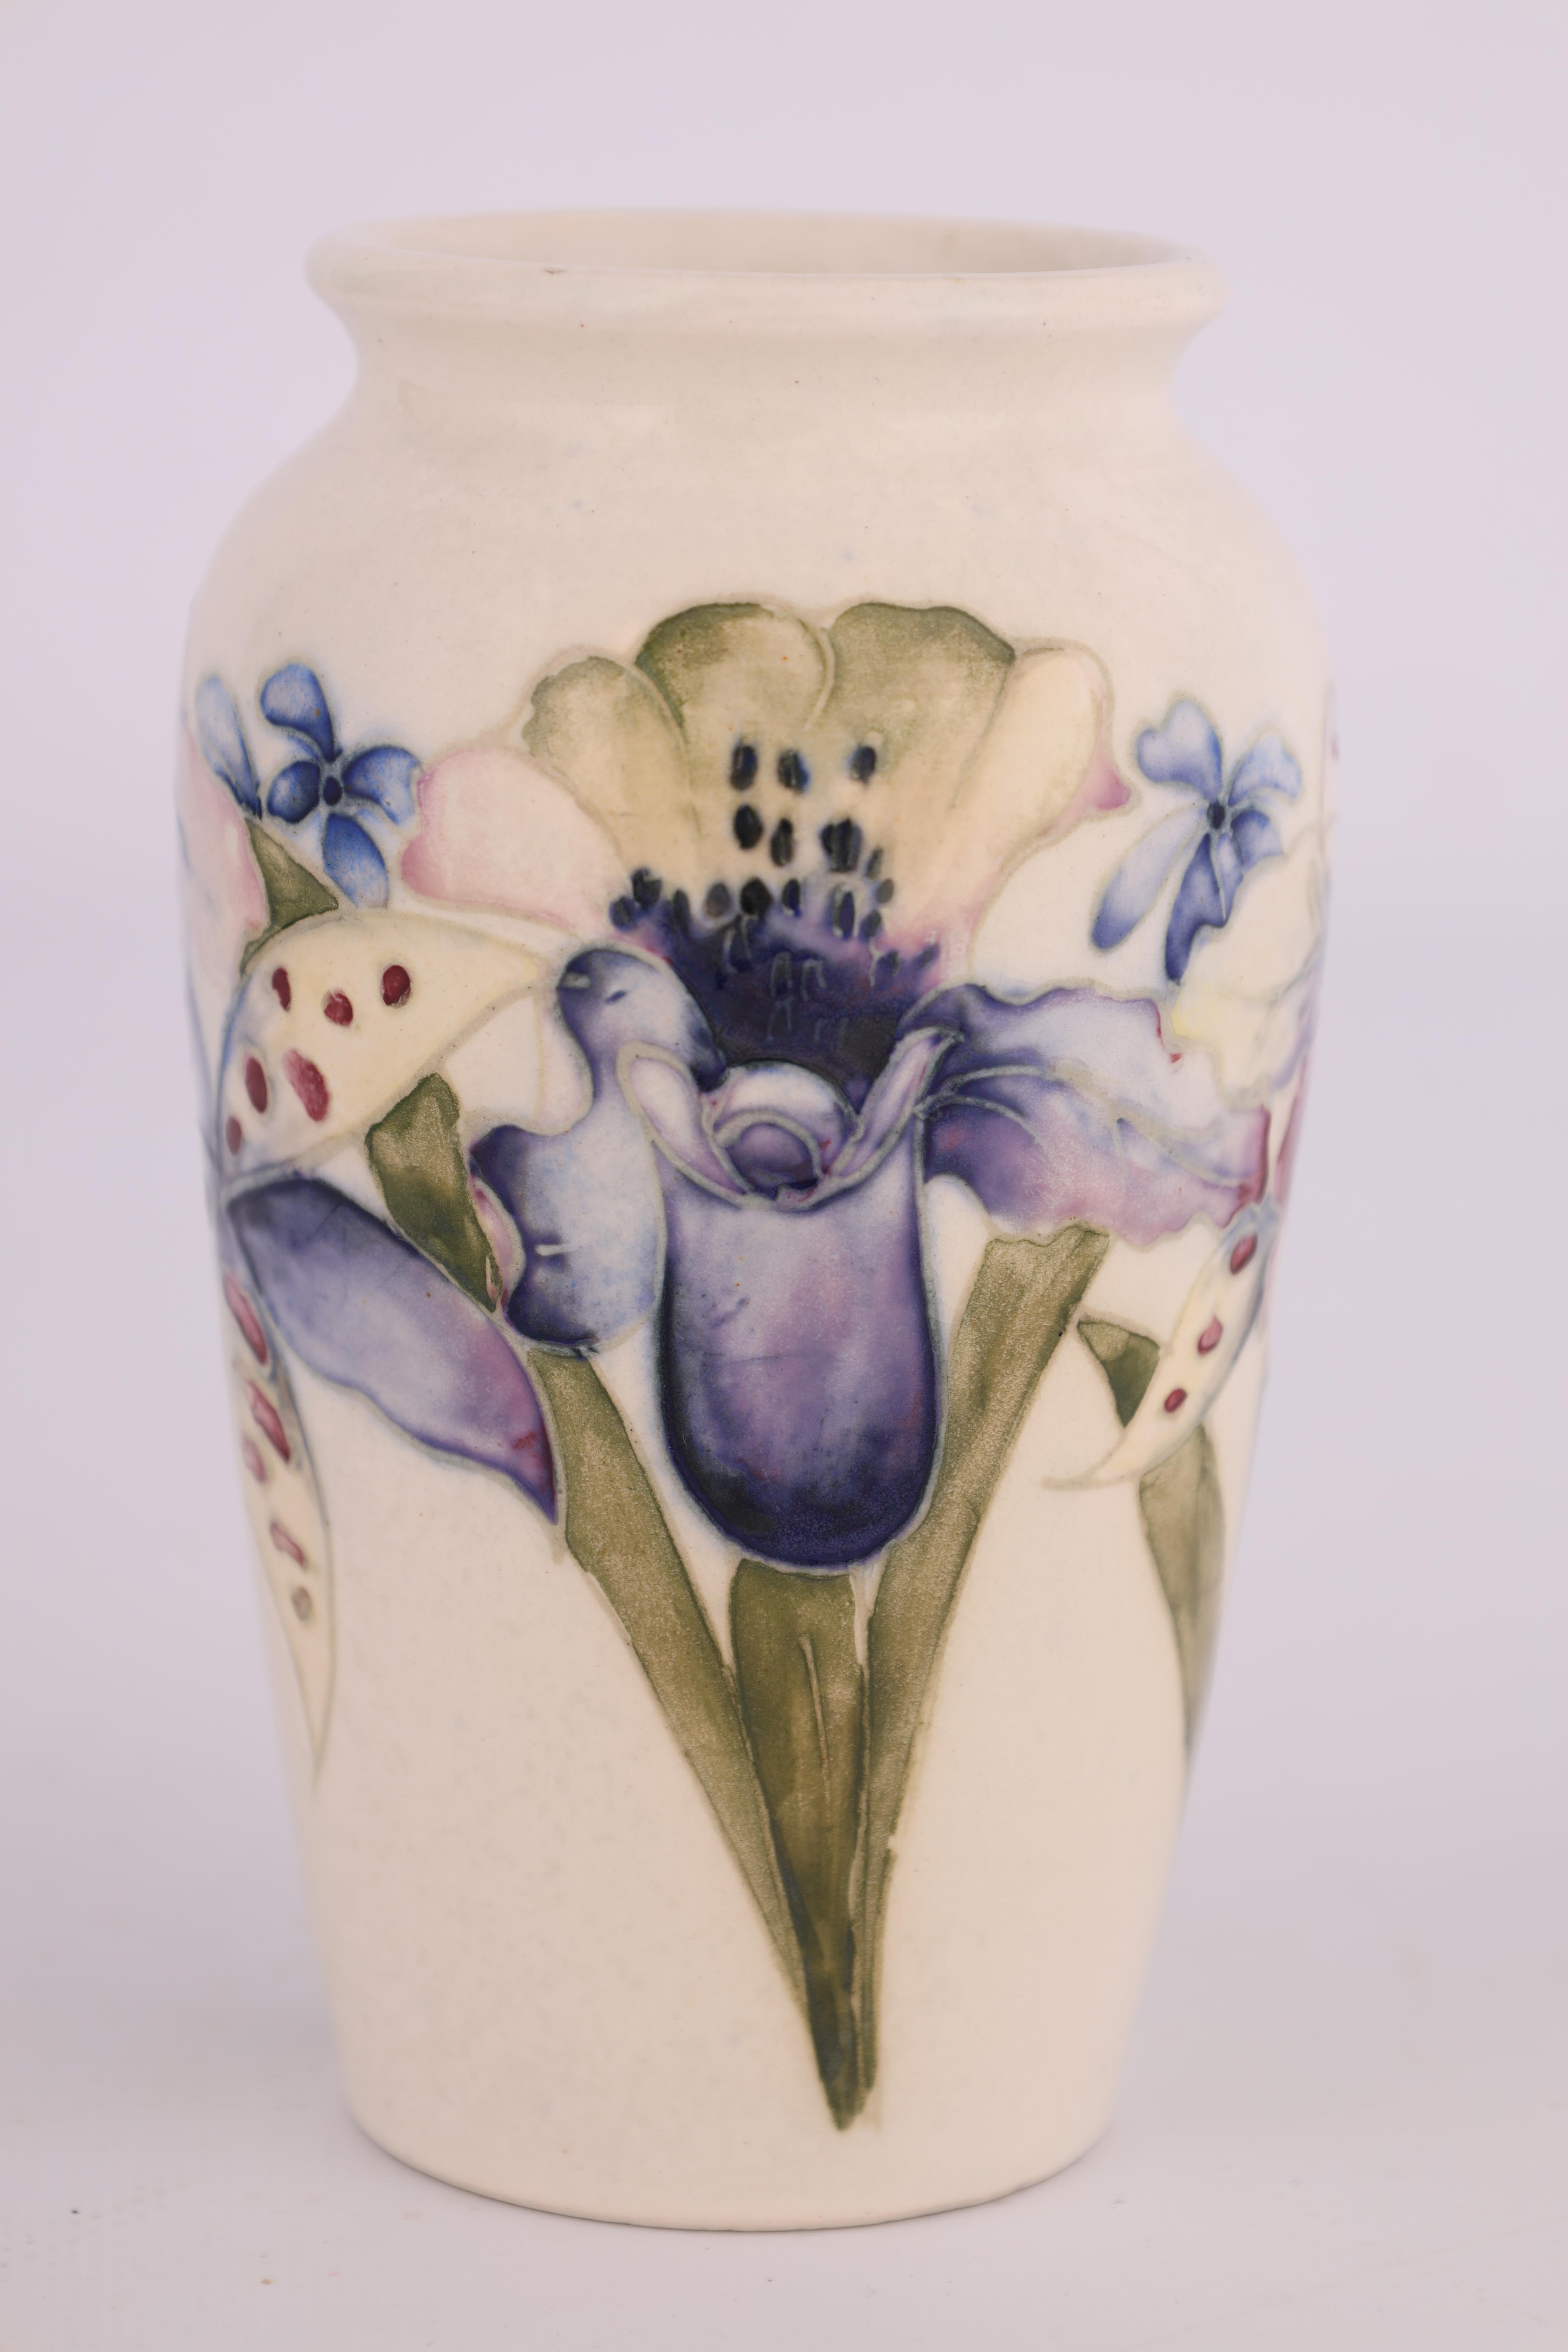 A MOORCROFT SMALL TAPERING SHOULDERED VASE decorated with orchid sprays on a cream ground, 13cm - Image 3 of 4